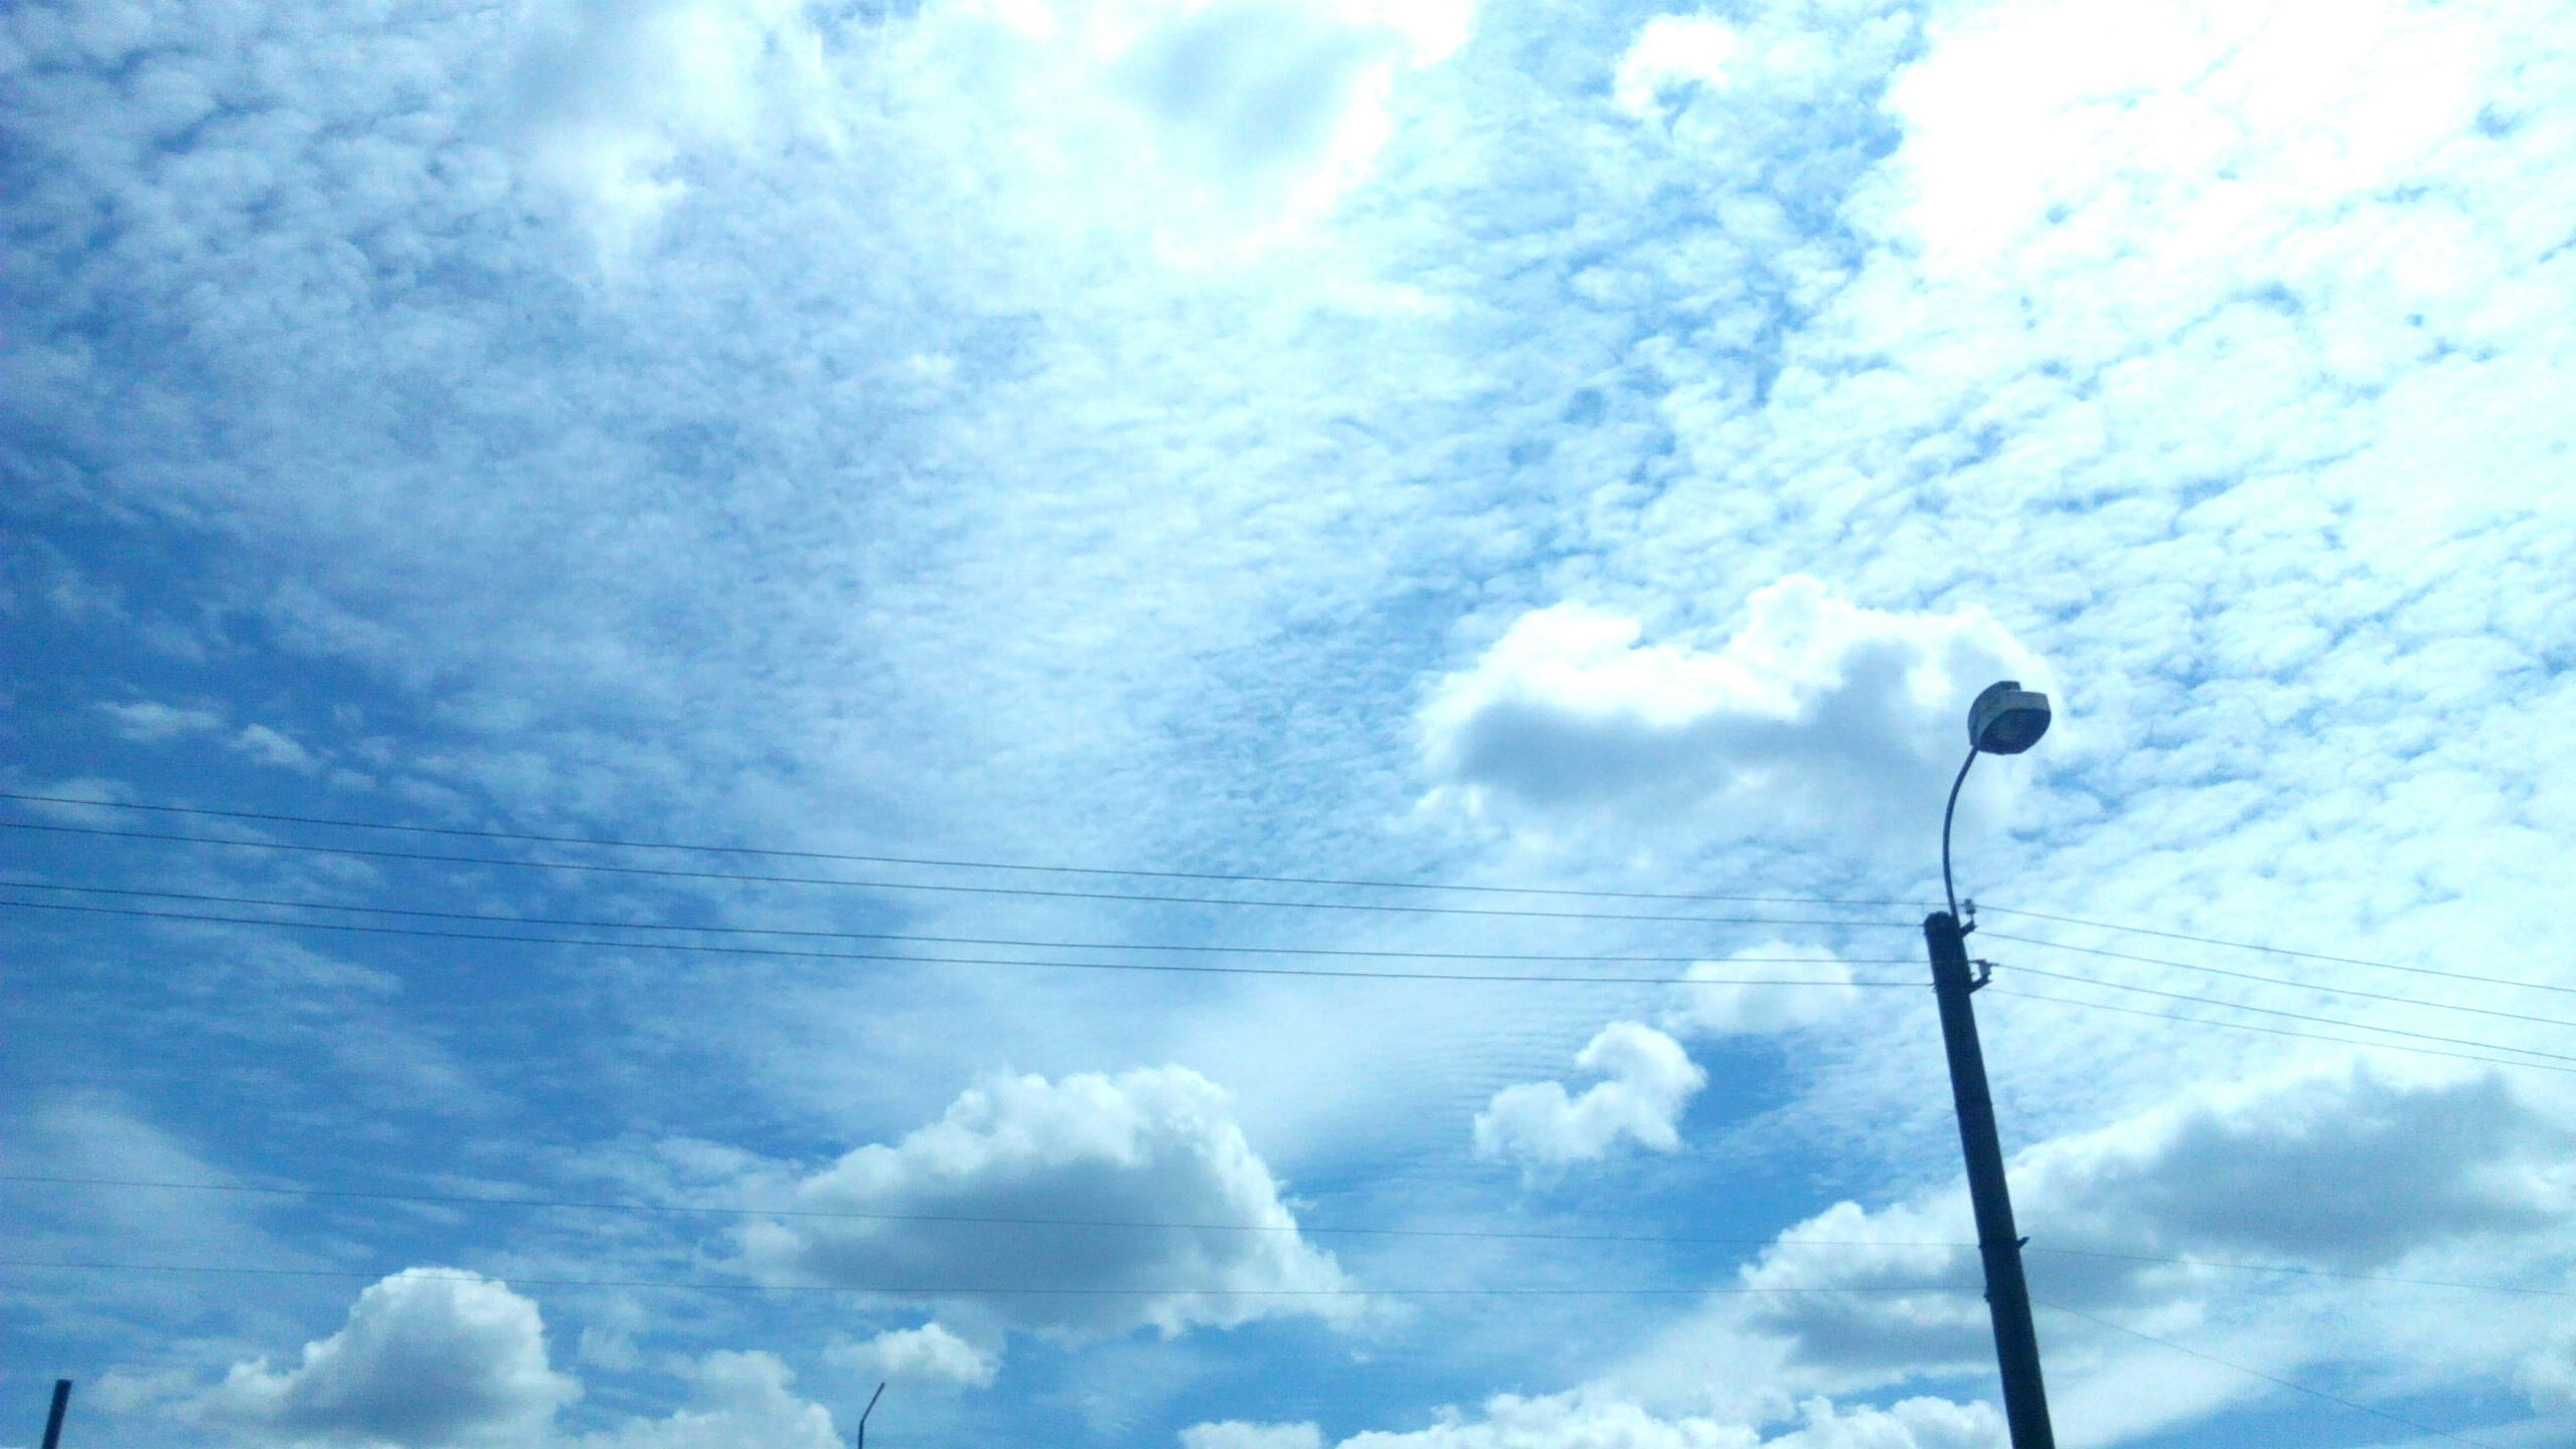 low angle view, sky, cloud - sky, power line, electricity, cloudy, street light, cable, lighting equipment, cloud, blue, power supply, connection, technology, electricity pylon, nature, pole, no people, outdoors, day